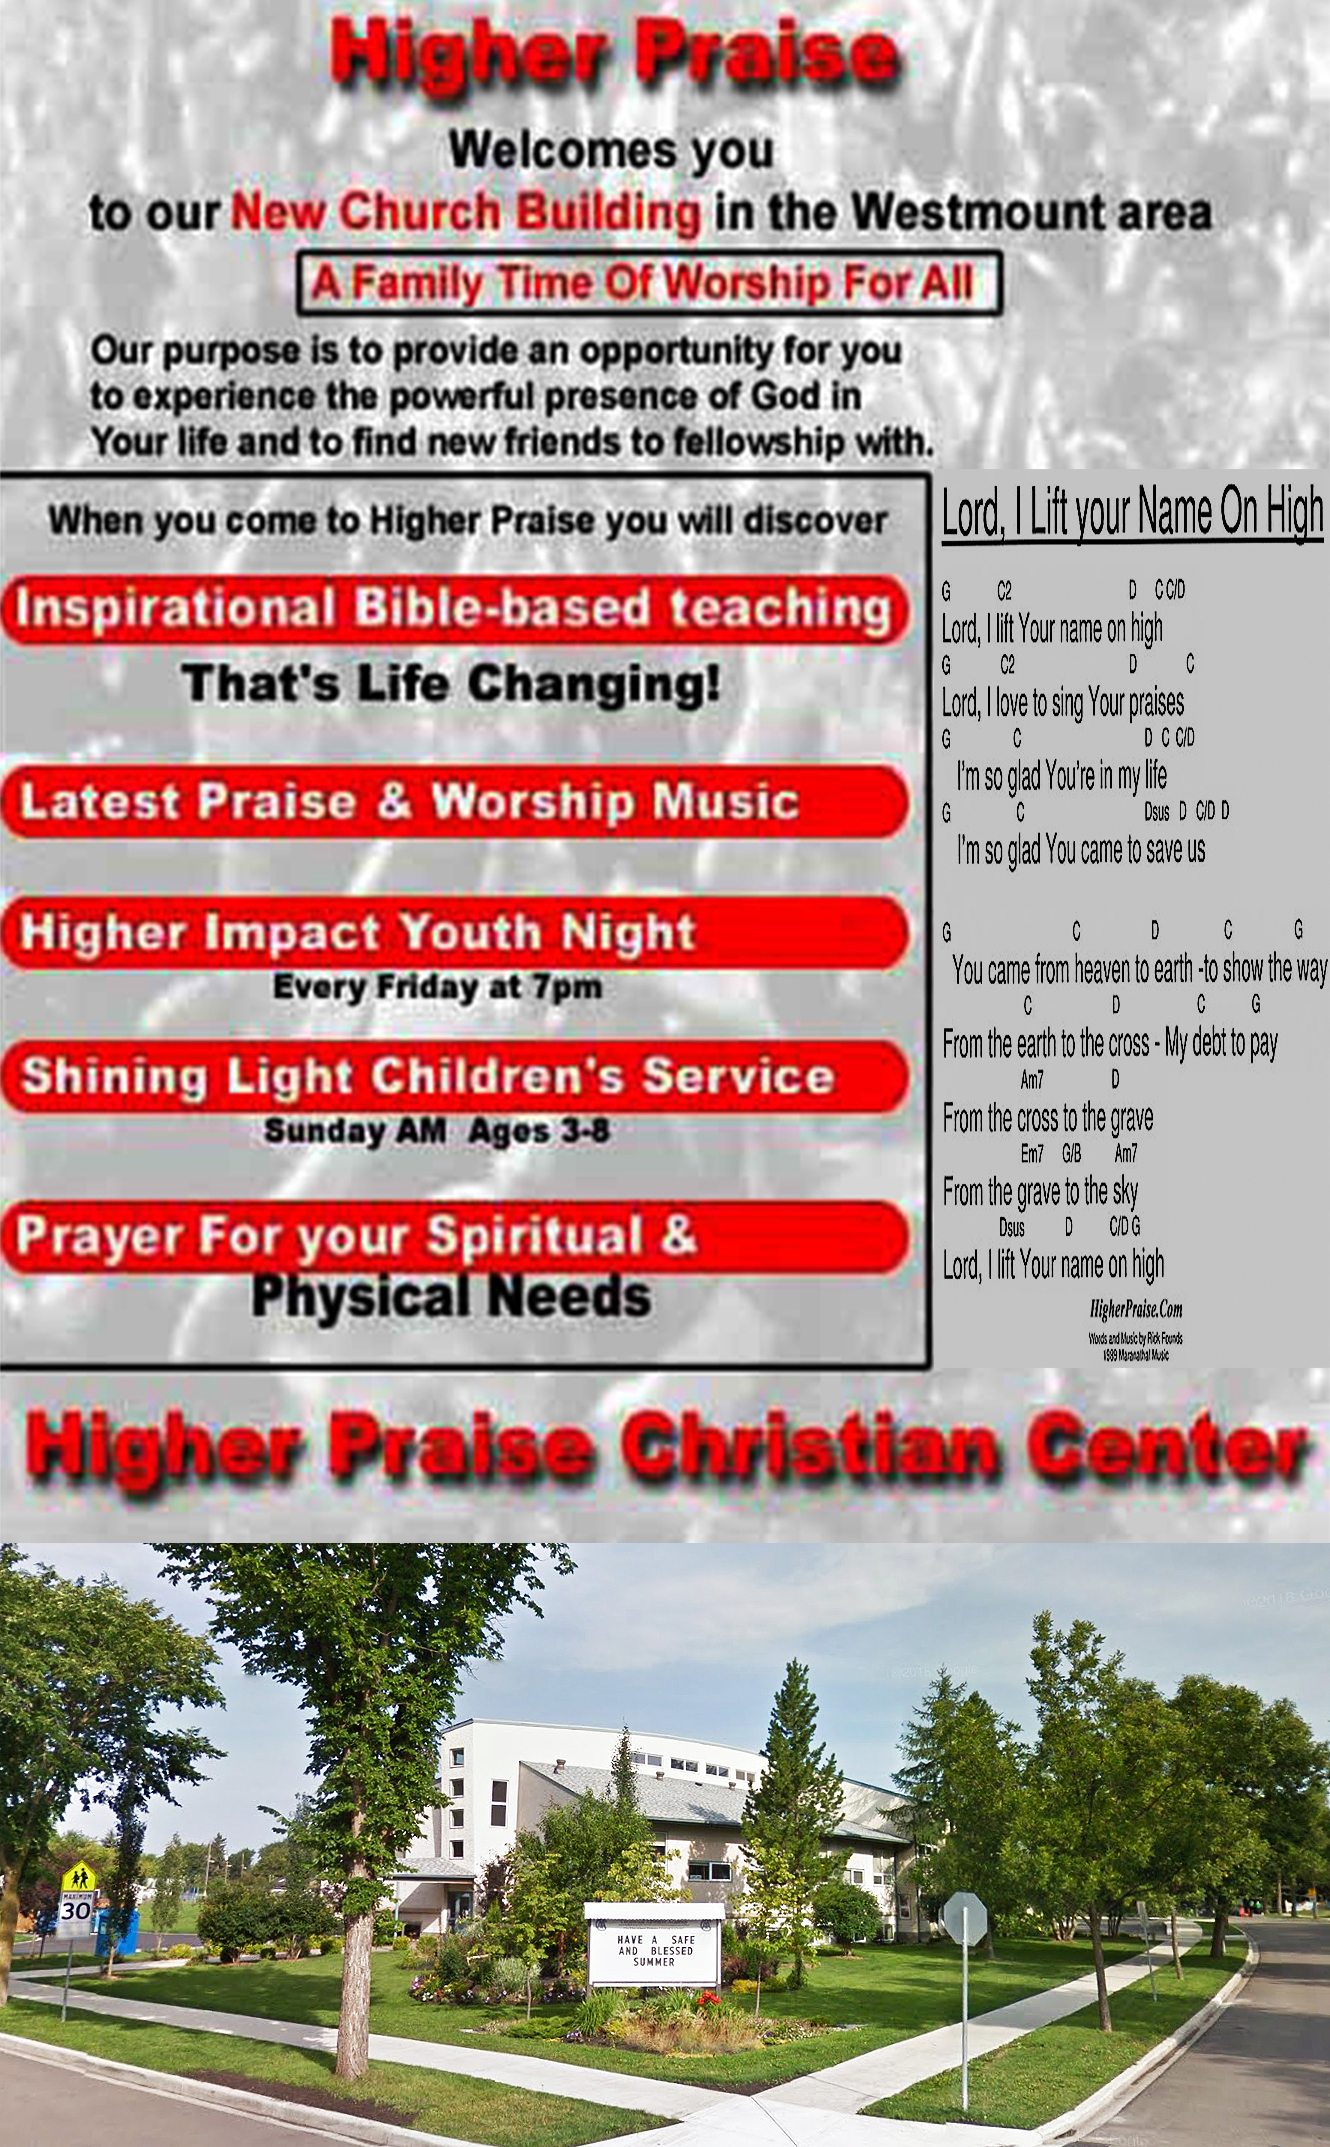 Higher Praise Church - Higher Praise Christian Center - We love to Worship The Lord In Song and By His Word